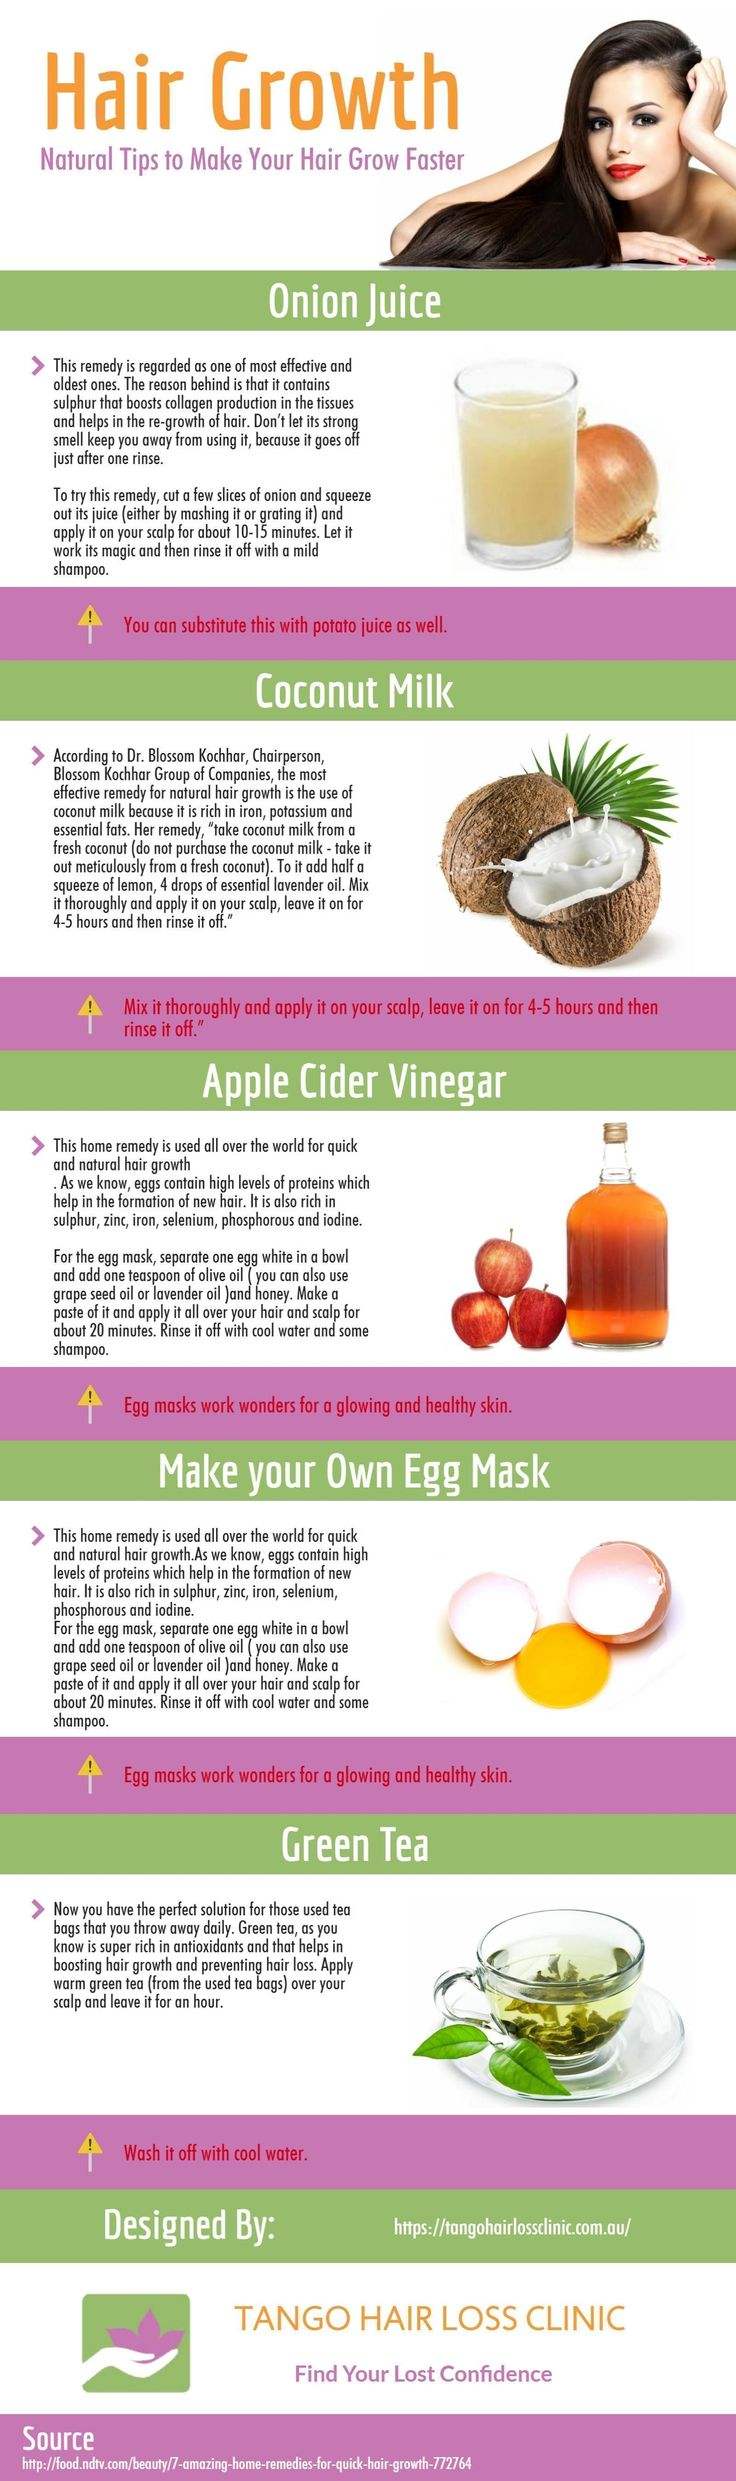 The following infographic is designed by Tango Hair Loss Clinic. Hair grows on its own, however, hair growth can be affected by the way you treat and care for it. If you want to grow long beautiful hair, what you must follow some rules and learn to take care of your hair. This infographic gives 5 good tips for making hair grow faster. #hairlossinfographic #haircaregrowth #hairlosstips